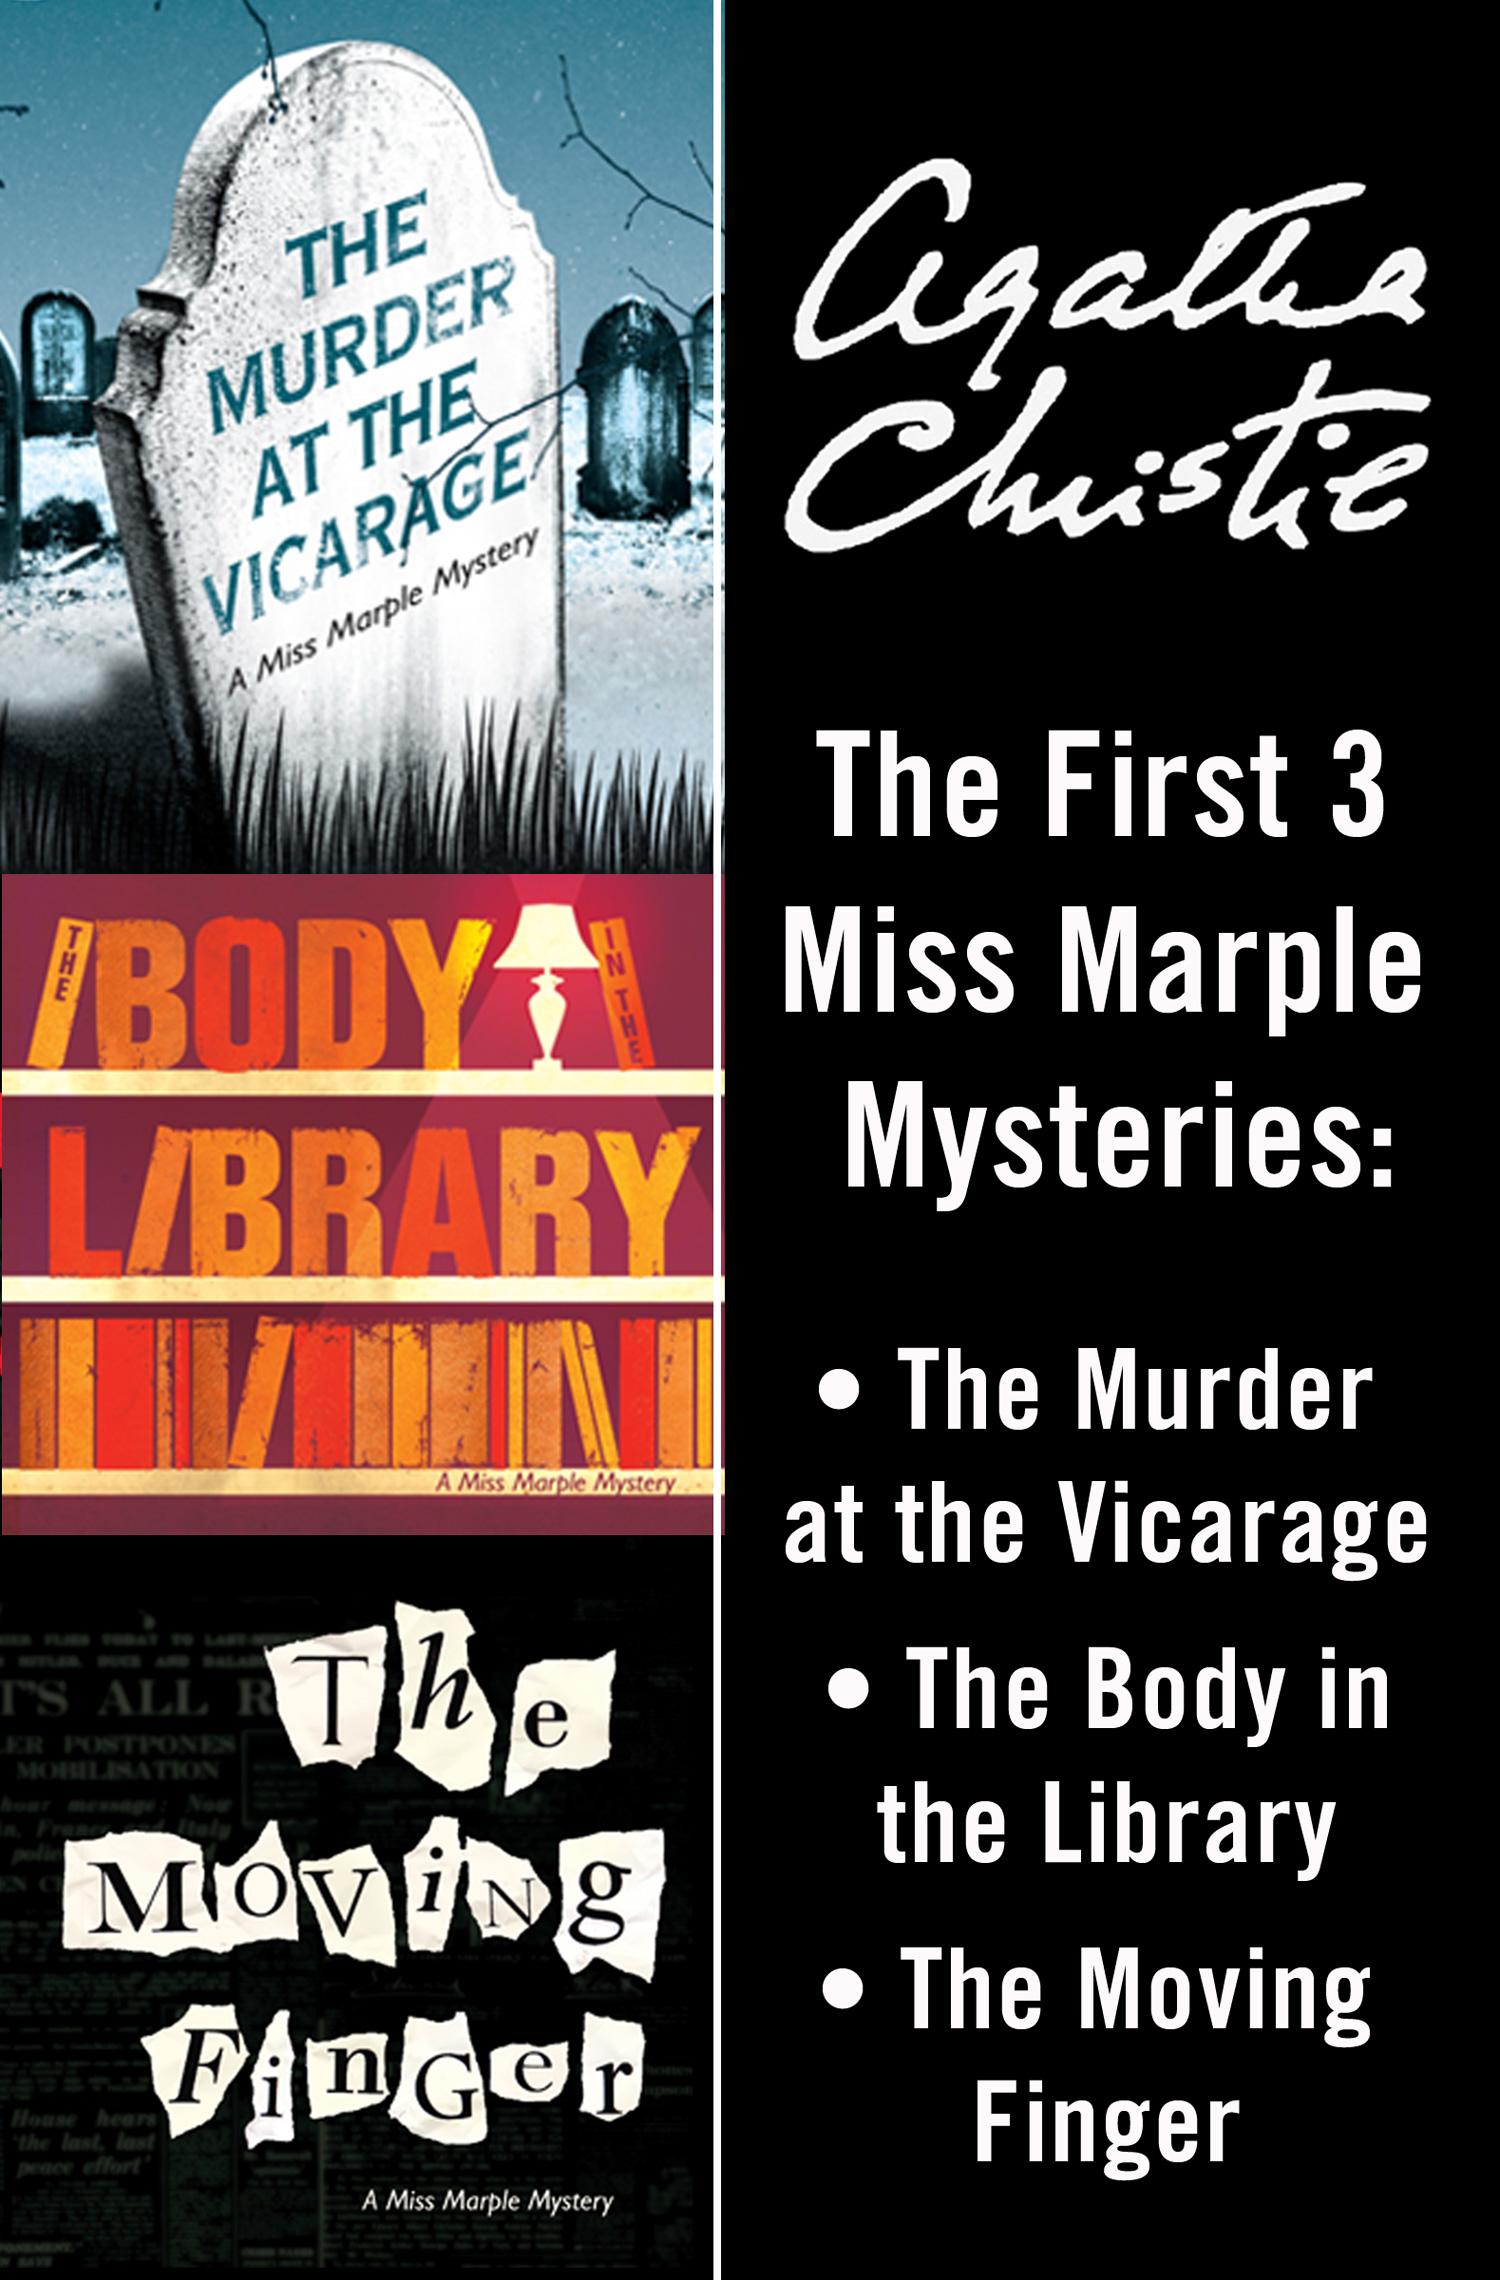 Miss Marple 3-Book Collection 1: The Murder at the Vicarage, The Body in the Library, The Moving Finger